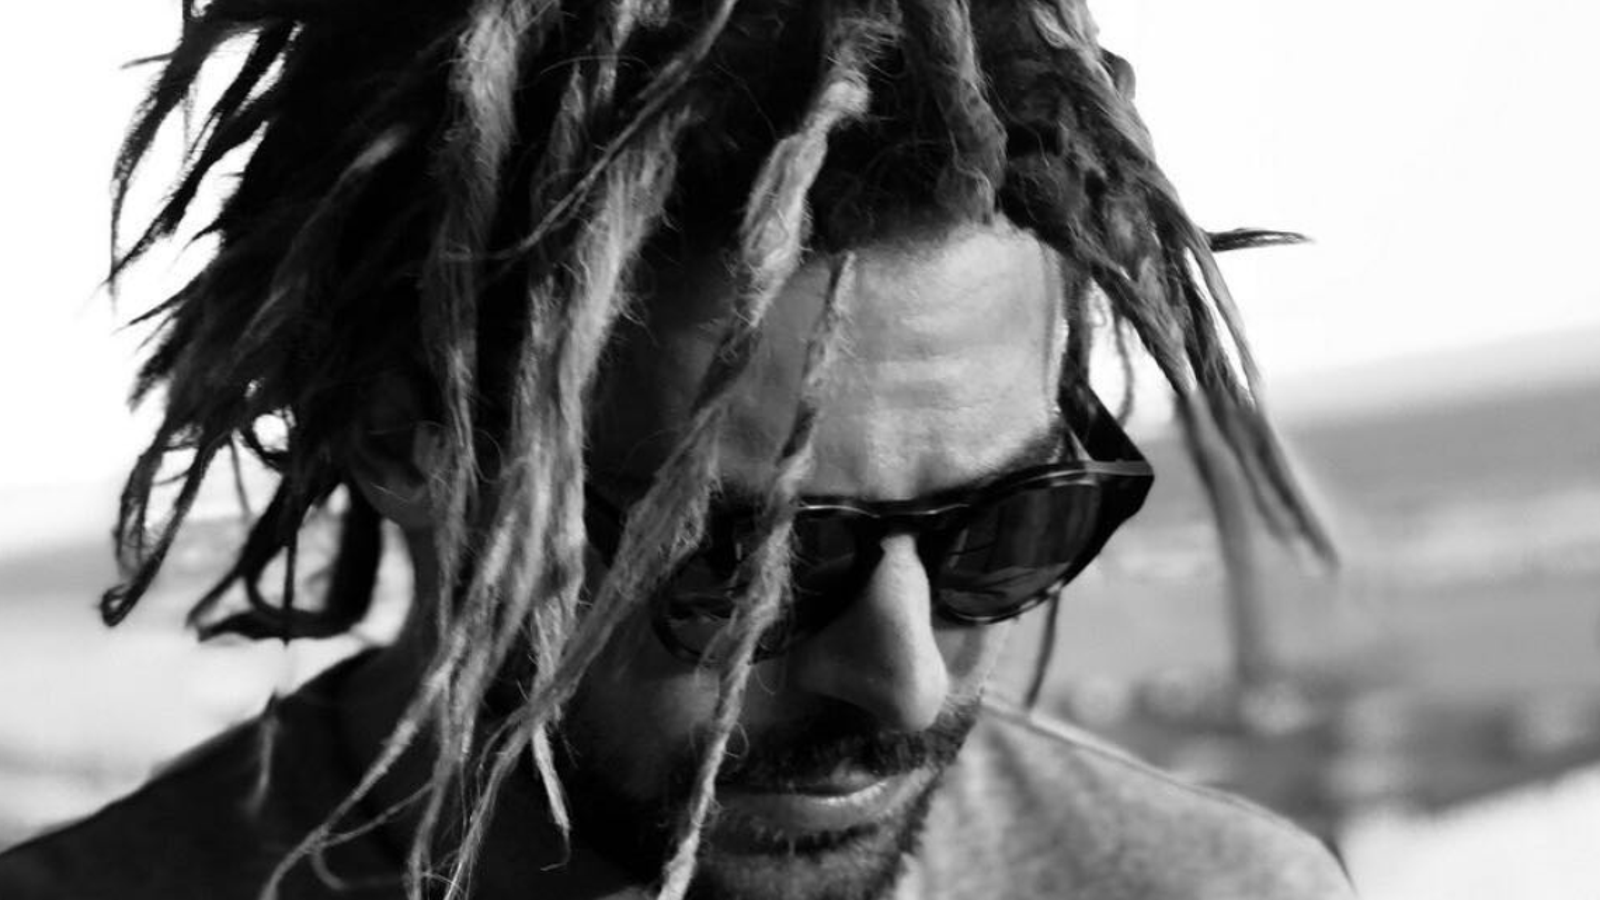 Zac Efron S Dreadlocks Are Hilarious Looking And Just For Fun